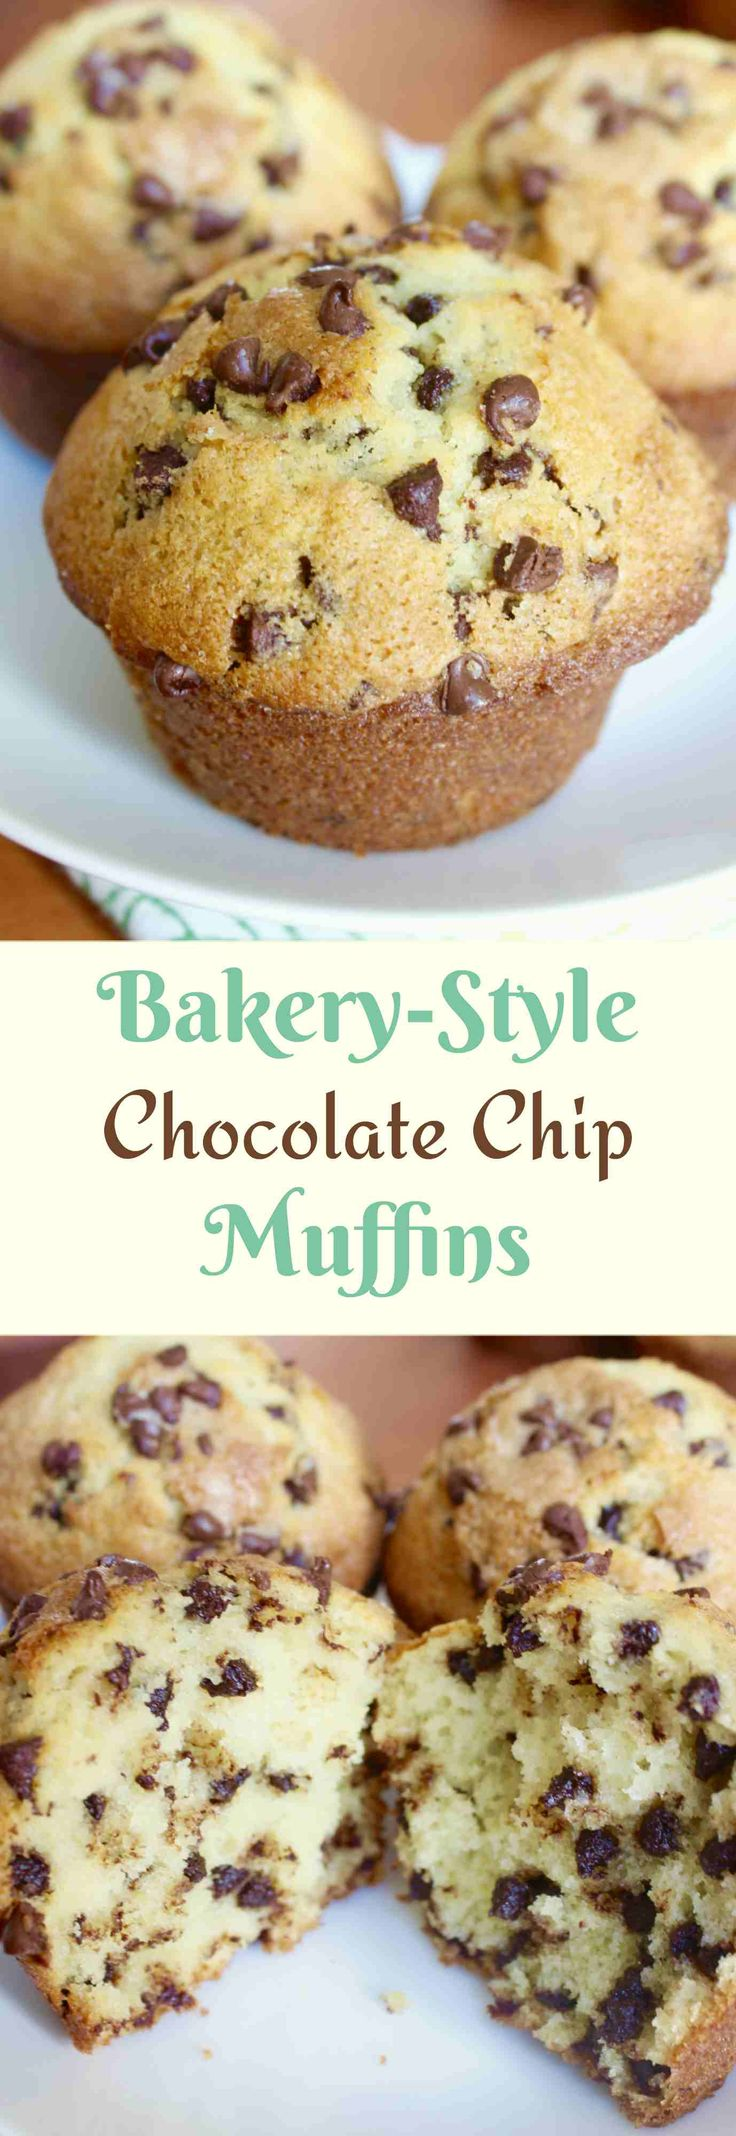 Big, fluffy, and moist bakery-style muffins with mini chocolate chips in the middle and sugar sprinkled on top.